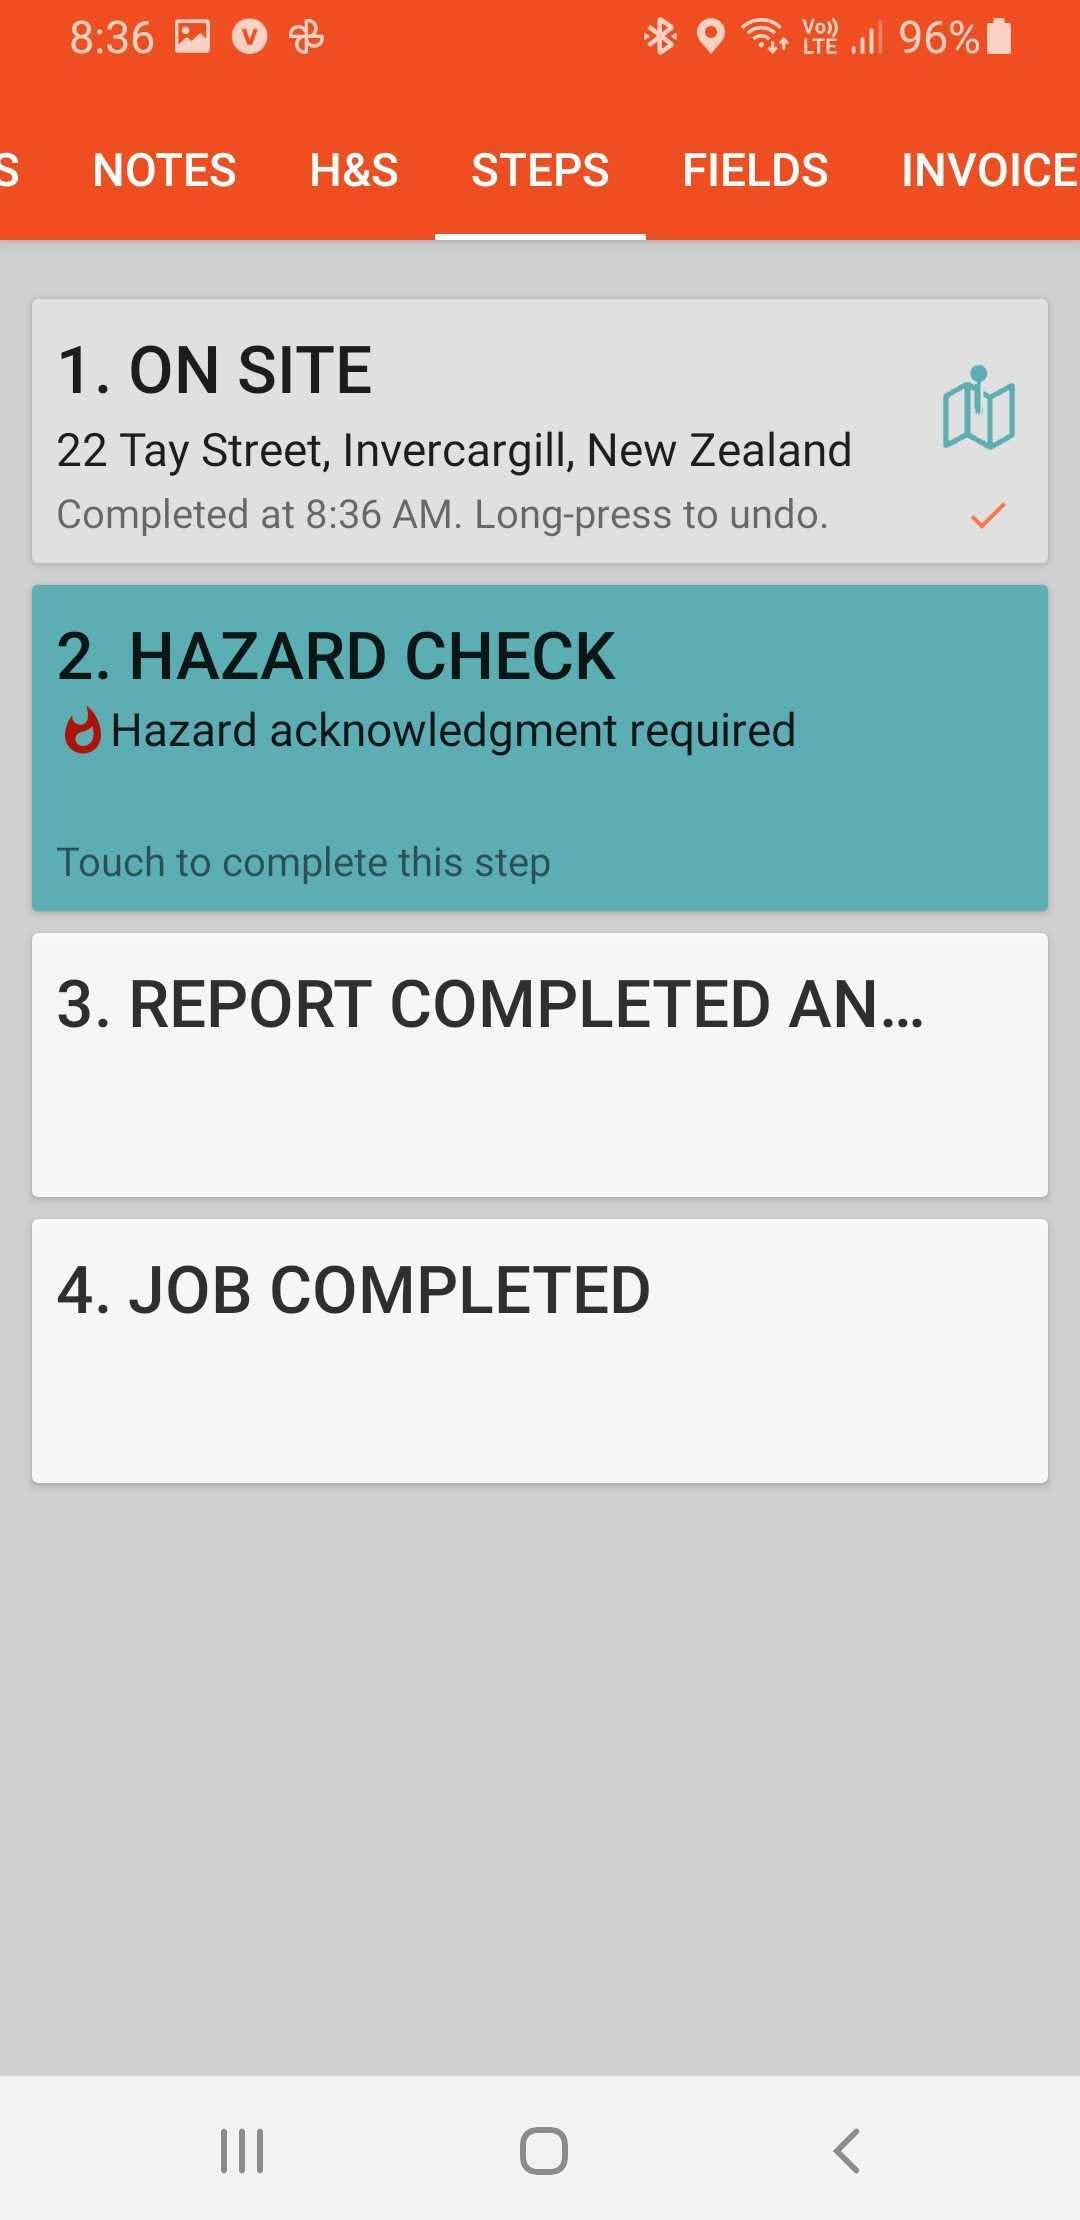 Safety check as seen by mobile worker